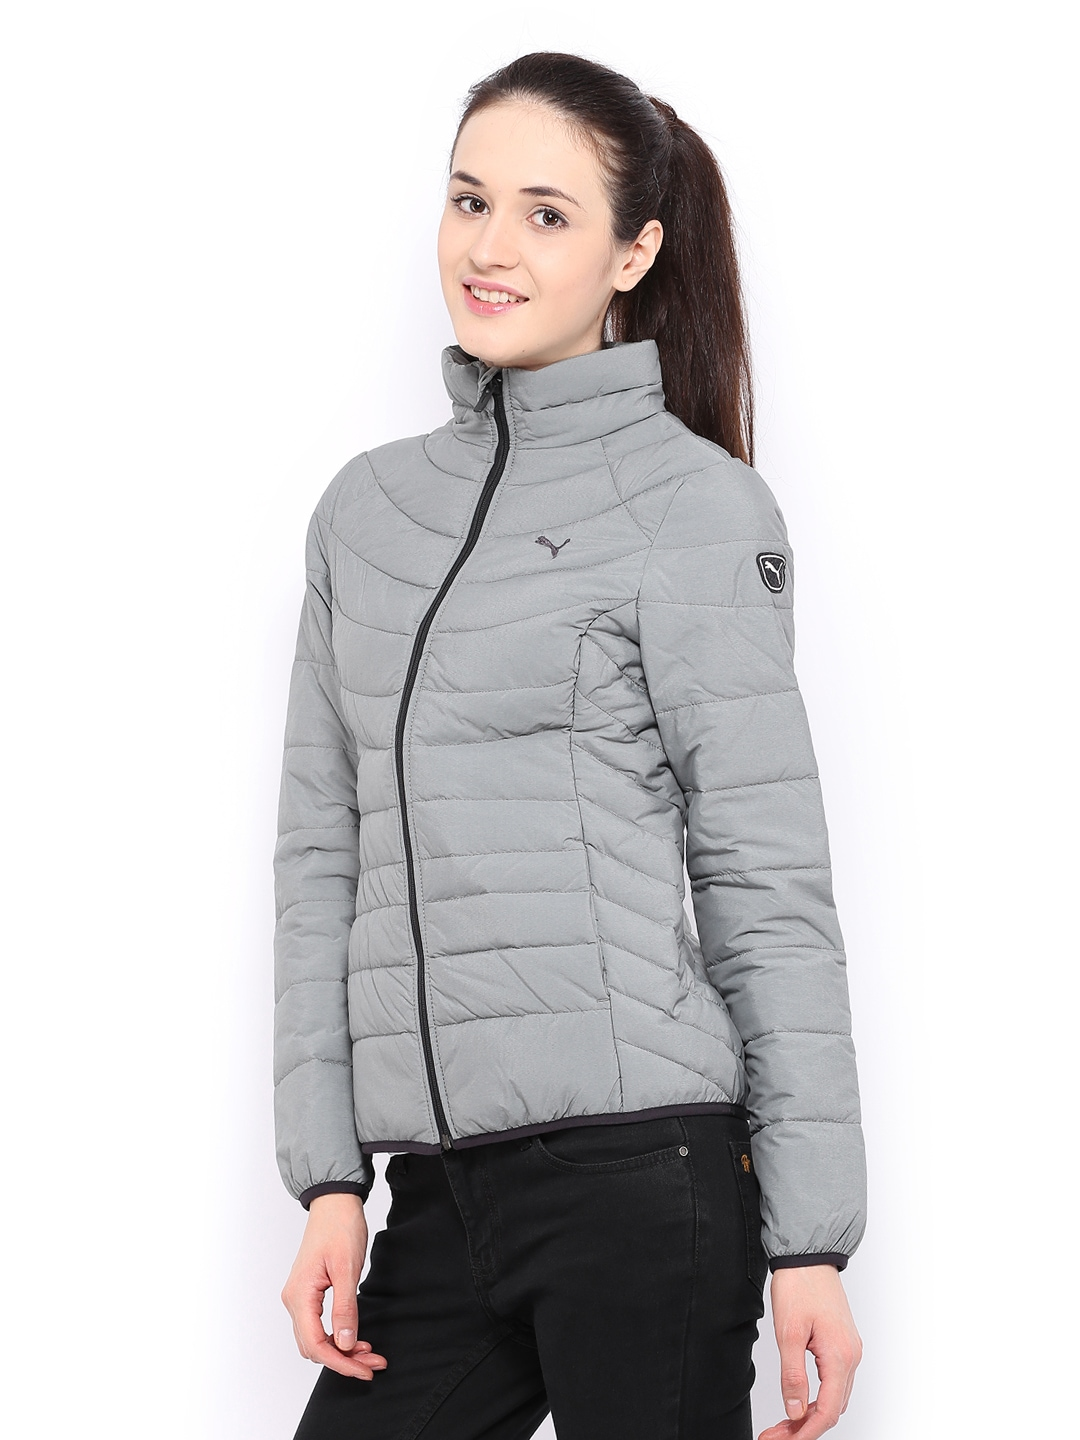 21bd9f75cb92 Buy Puma Women Grey Padded Jacket 1334310 for women online in ...